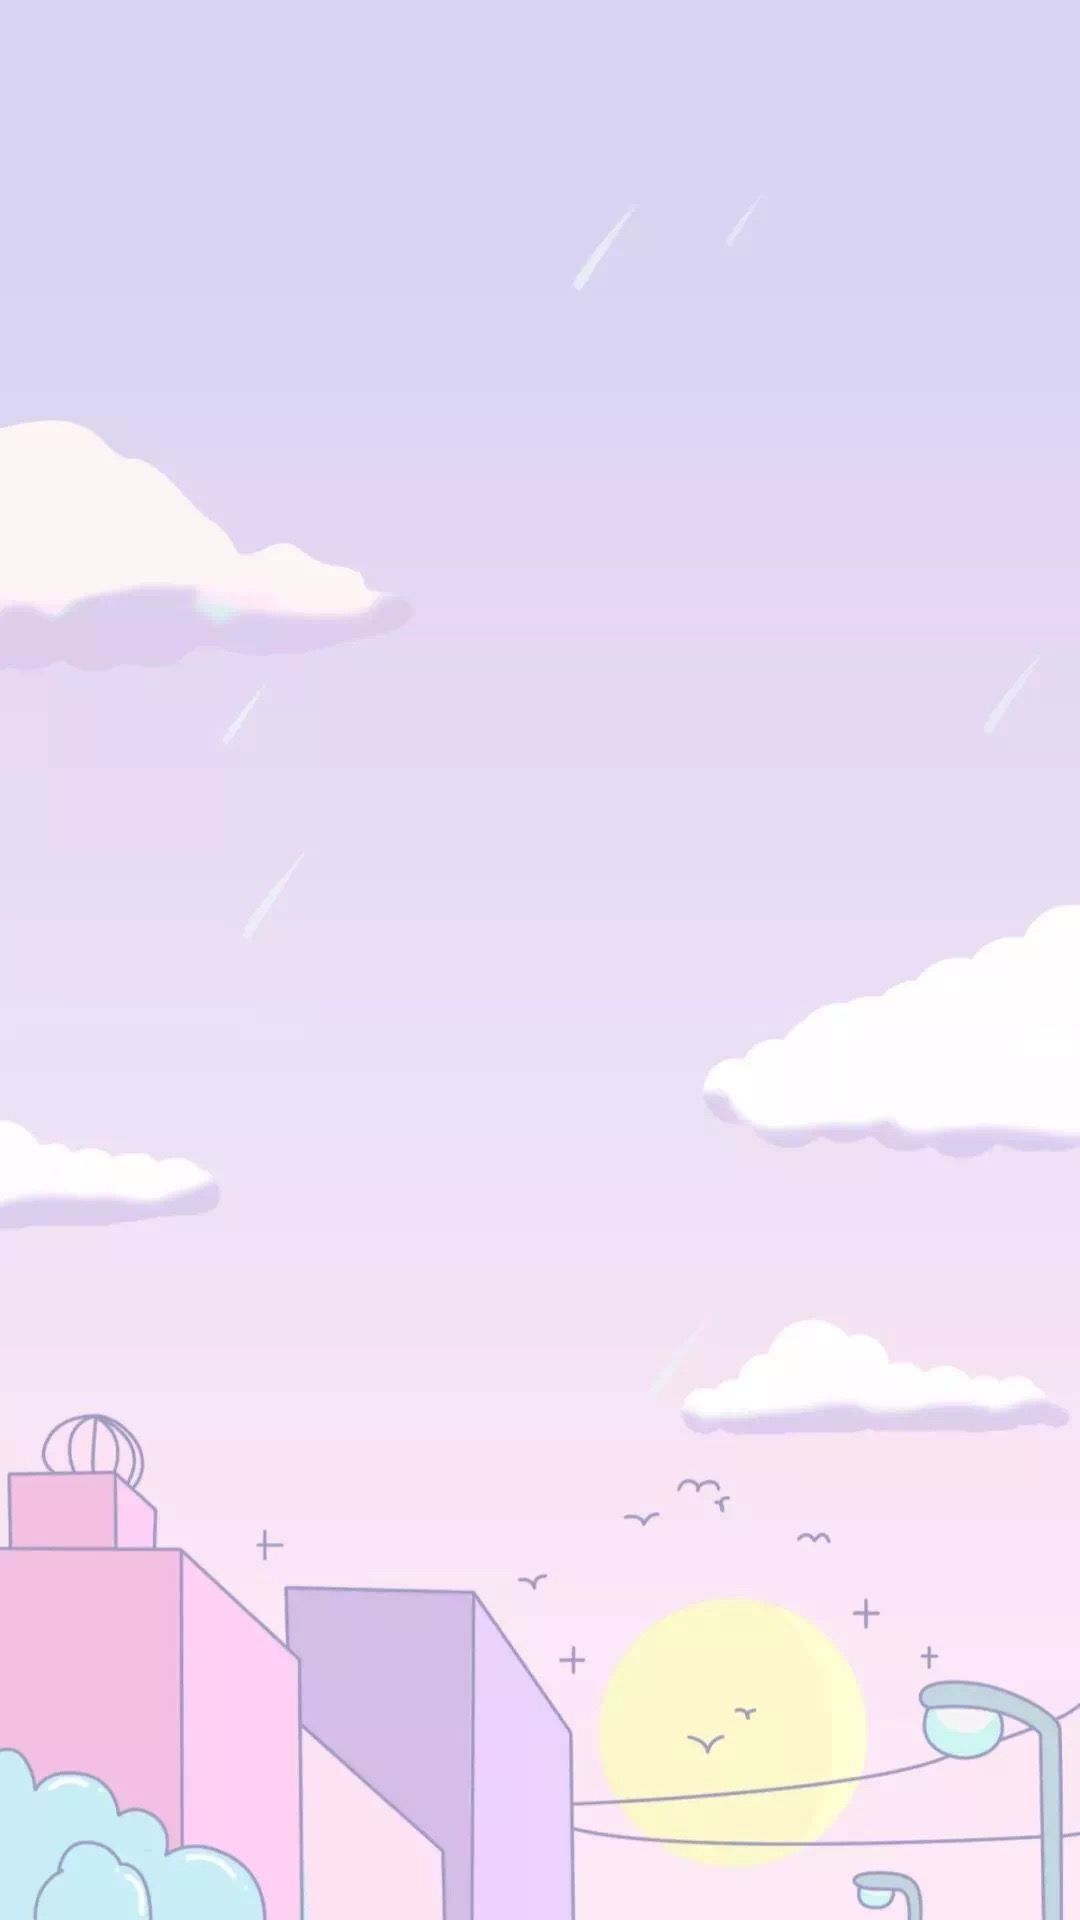 I Really Love This Picture Its Remind Me Of Japan Idk Why Scenery Wallpaper Anime Scenery Wallpaper Cute Pastel Wallpaper